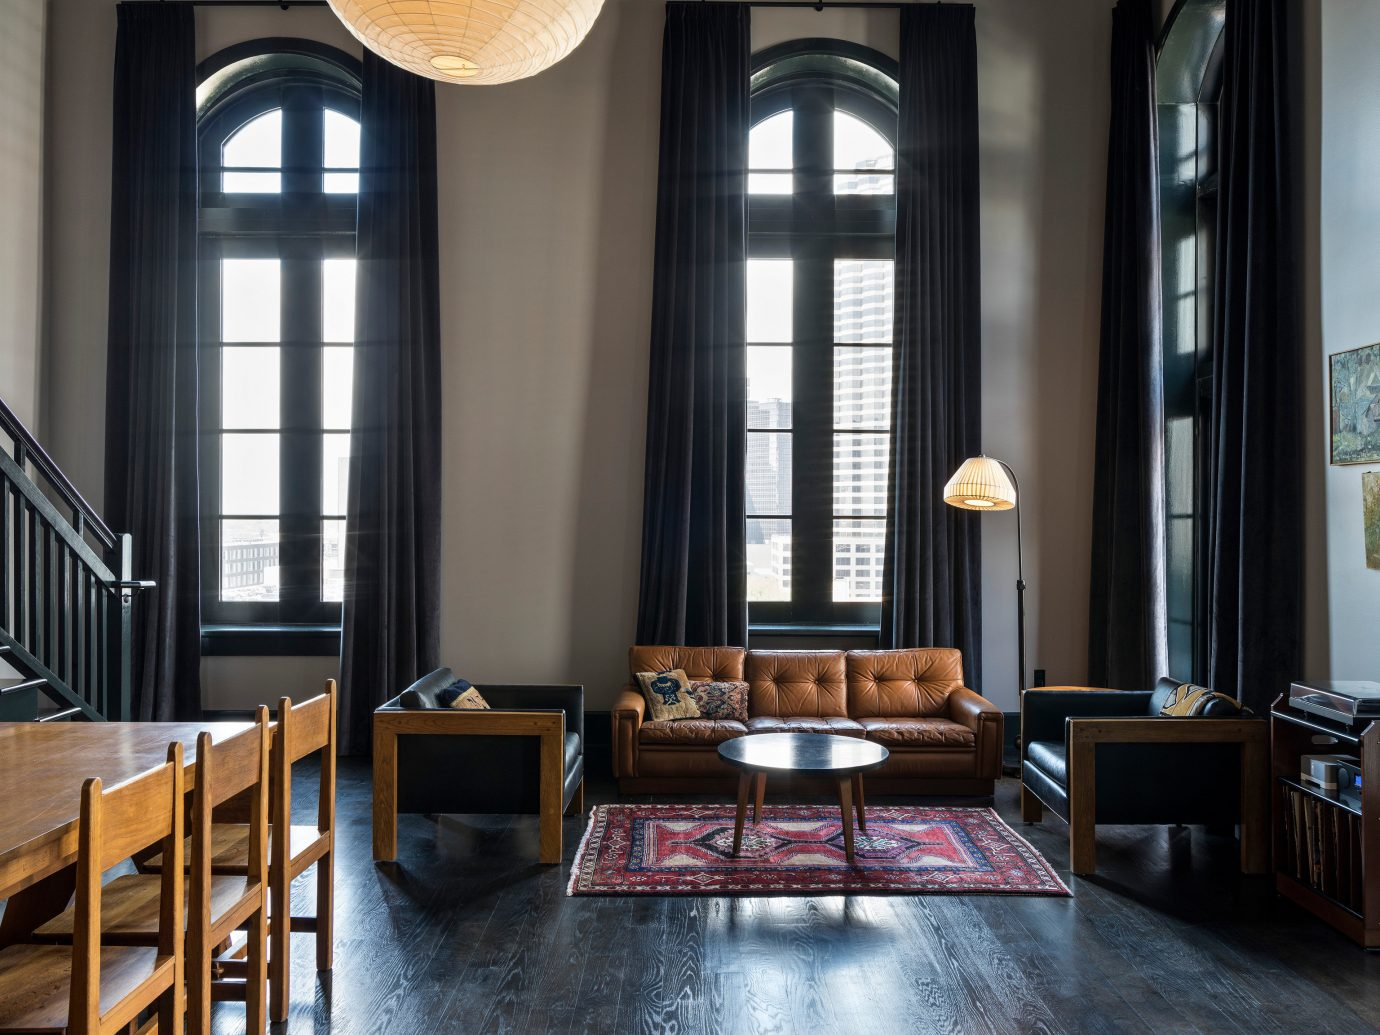 Sleek suite interior at Ace Hotel New Orleans